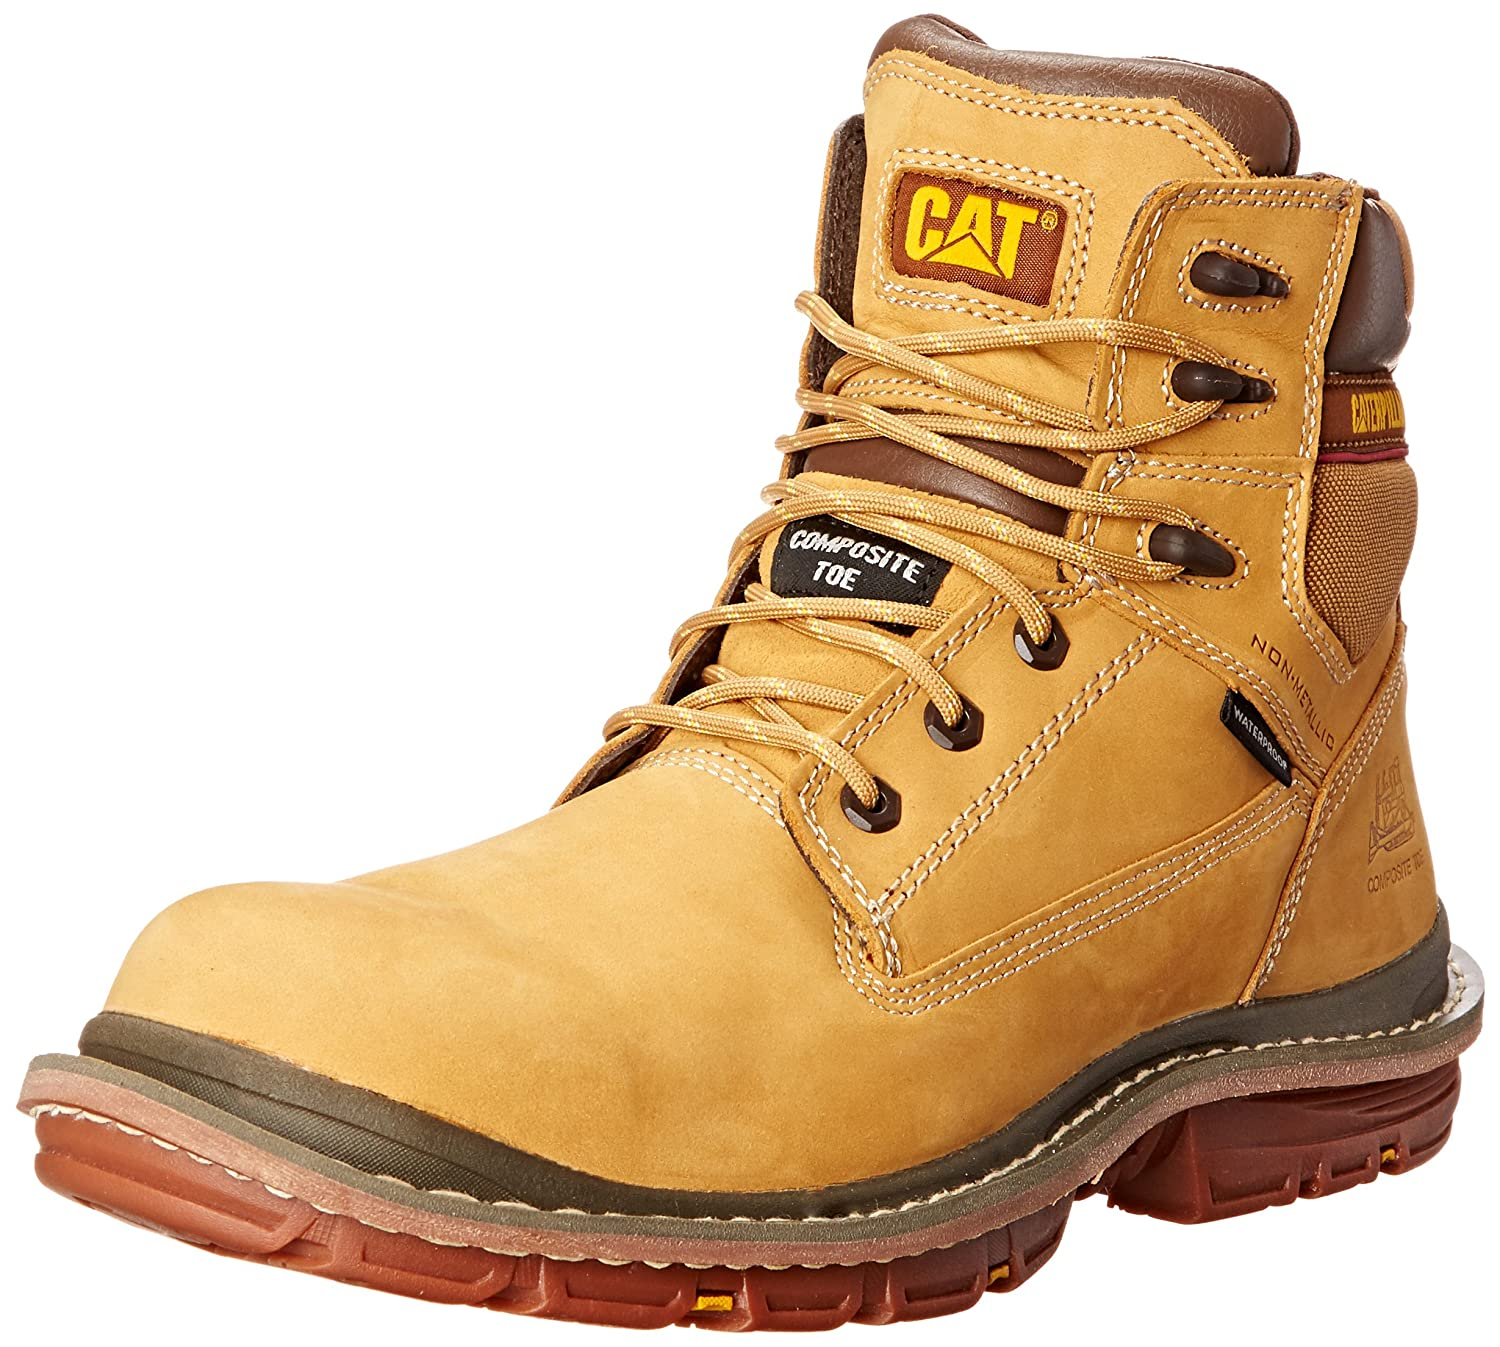 caterpillar shoes astm f2413-11 standards based education articl